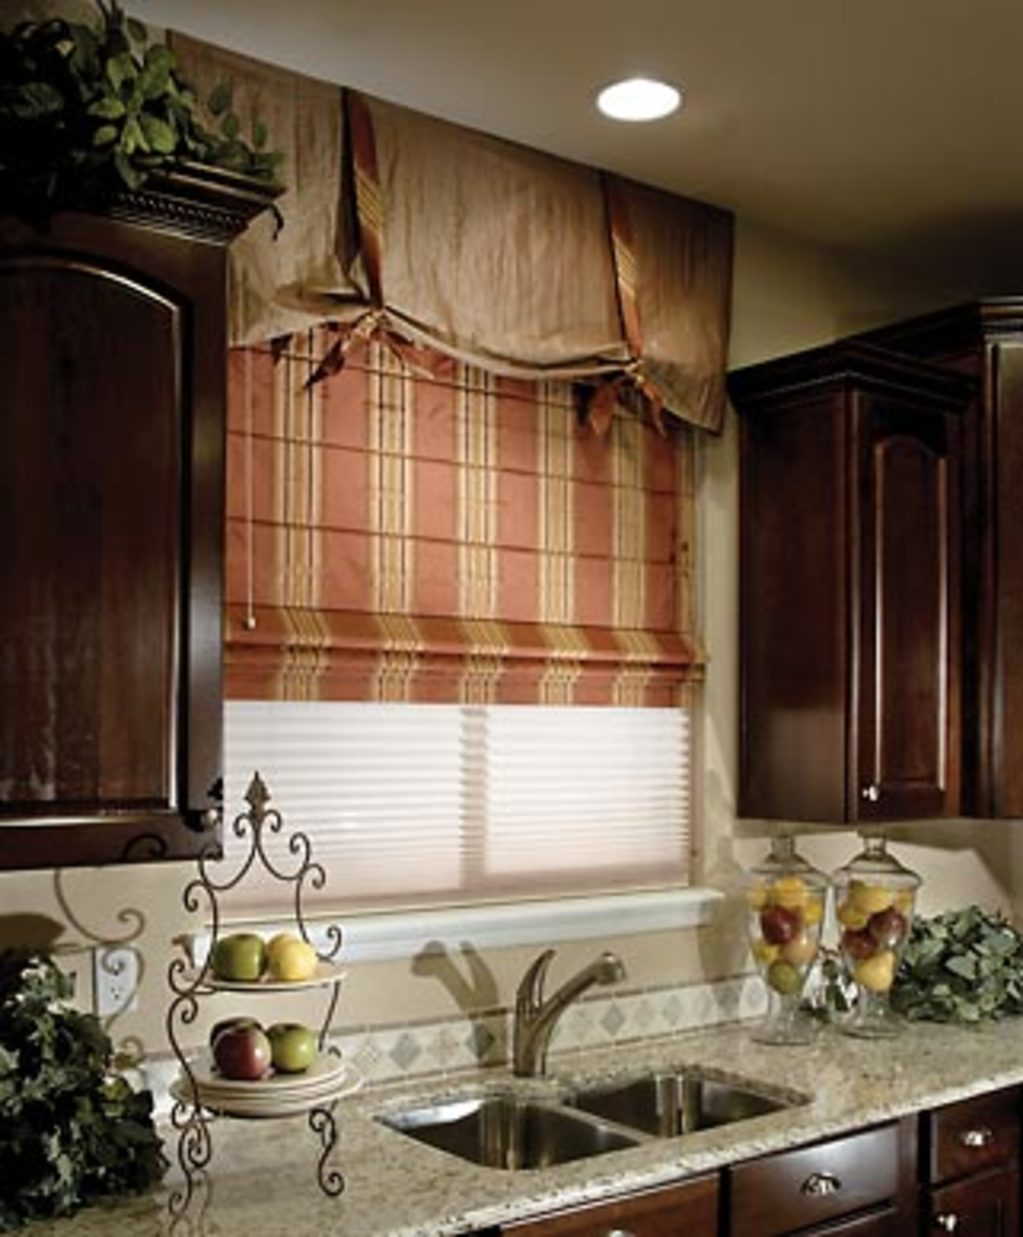 Payless Verticals & Blinds - Blinds 1